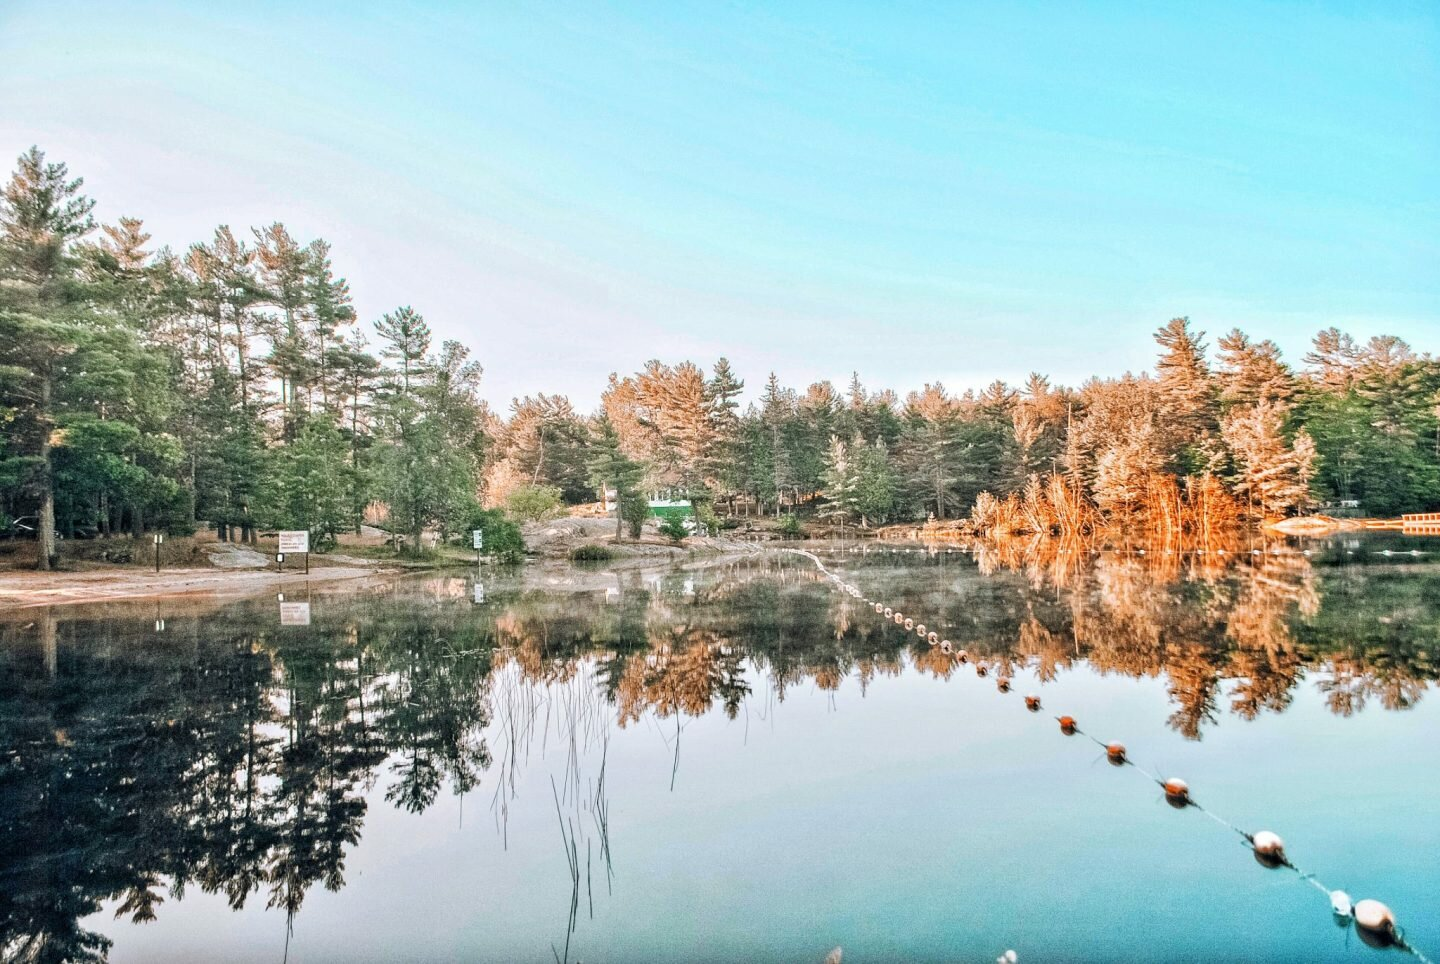 Camping at an Ontario Provincial Park: Everything you need to know